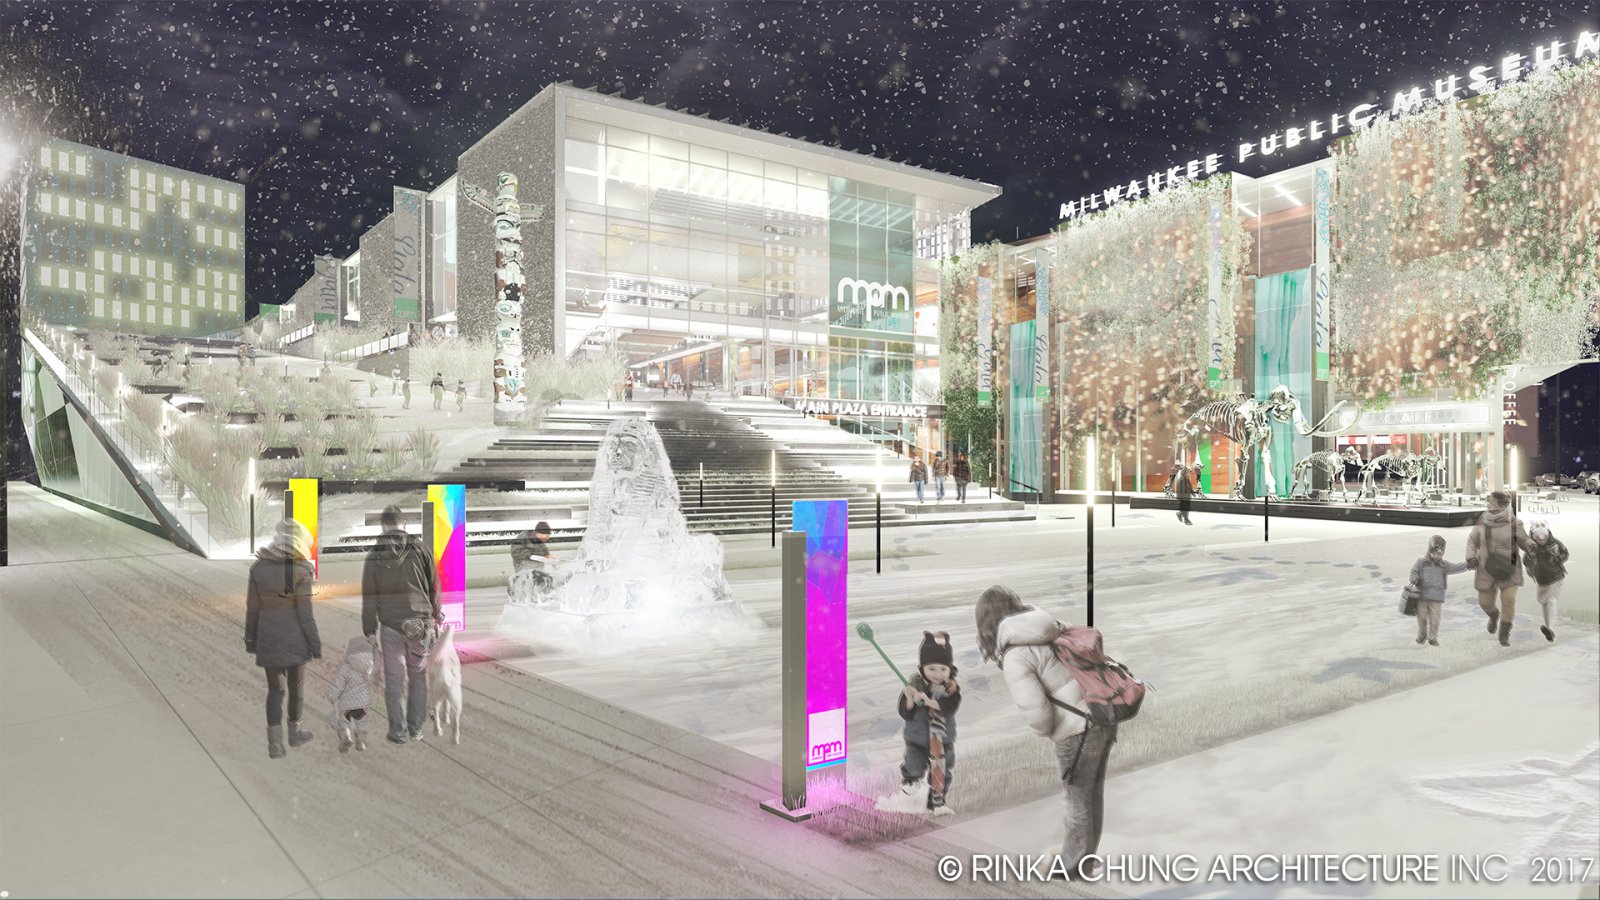 Conceptual design for the Milwaukee Public Museum front plaza